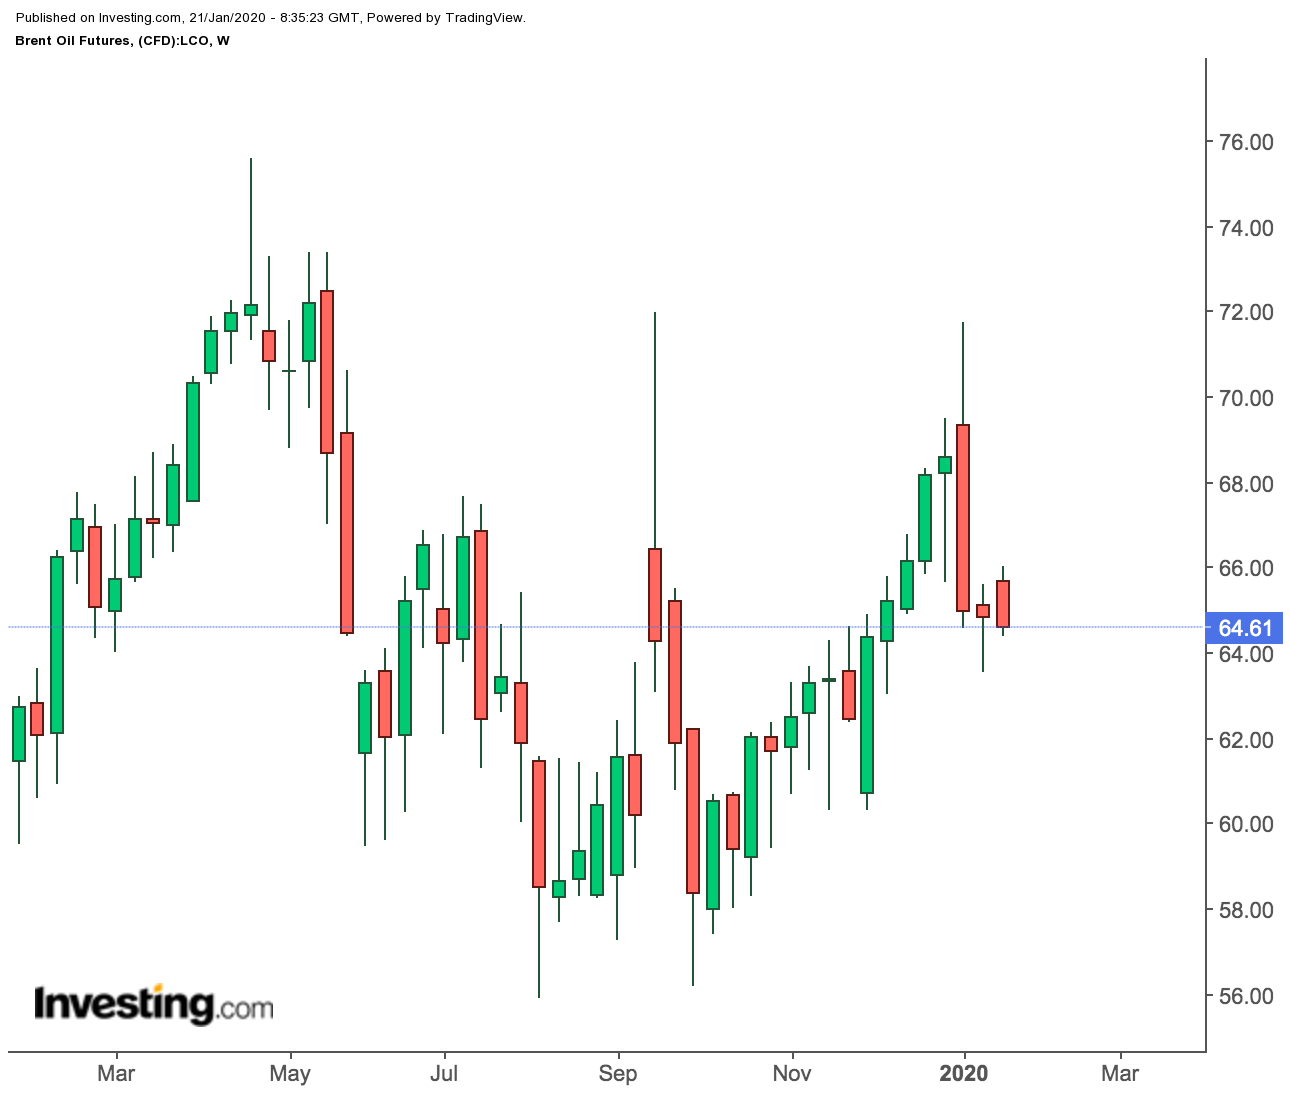 Brent Futures Weekly Prices